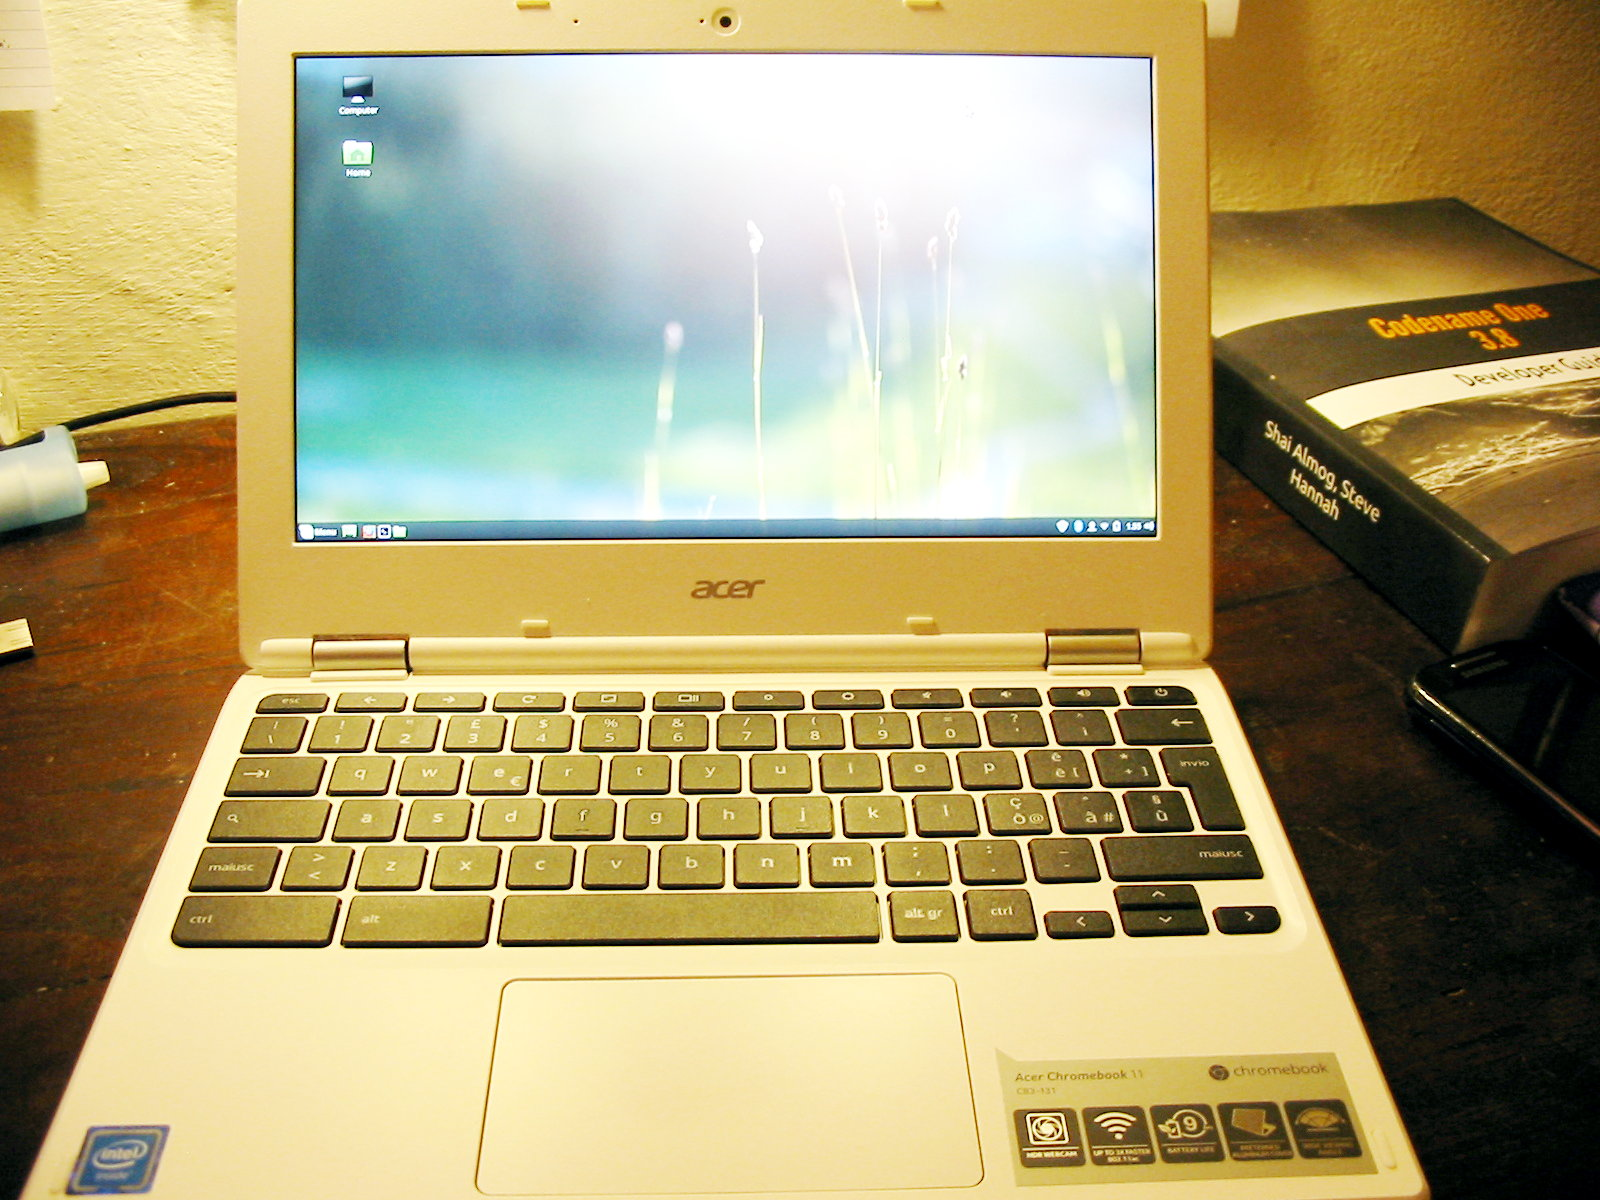 Netbook Linux